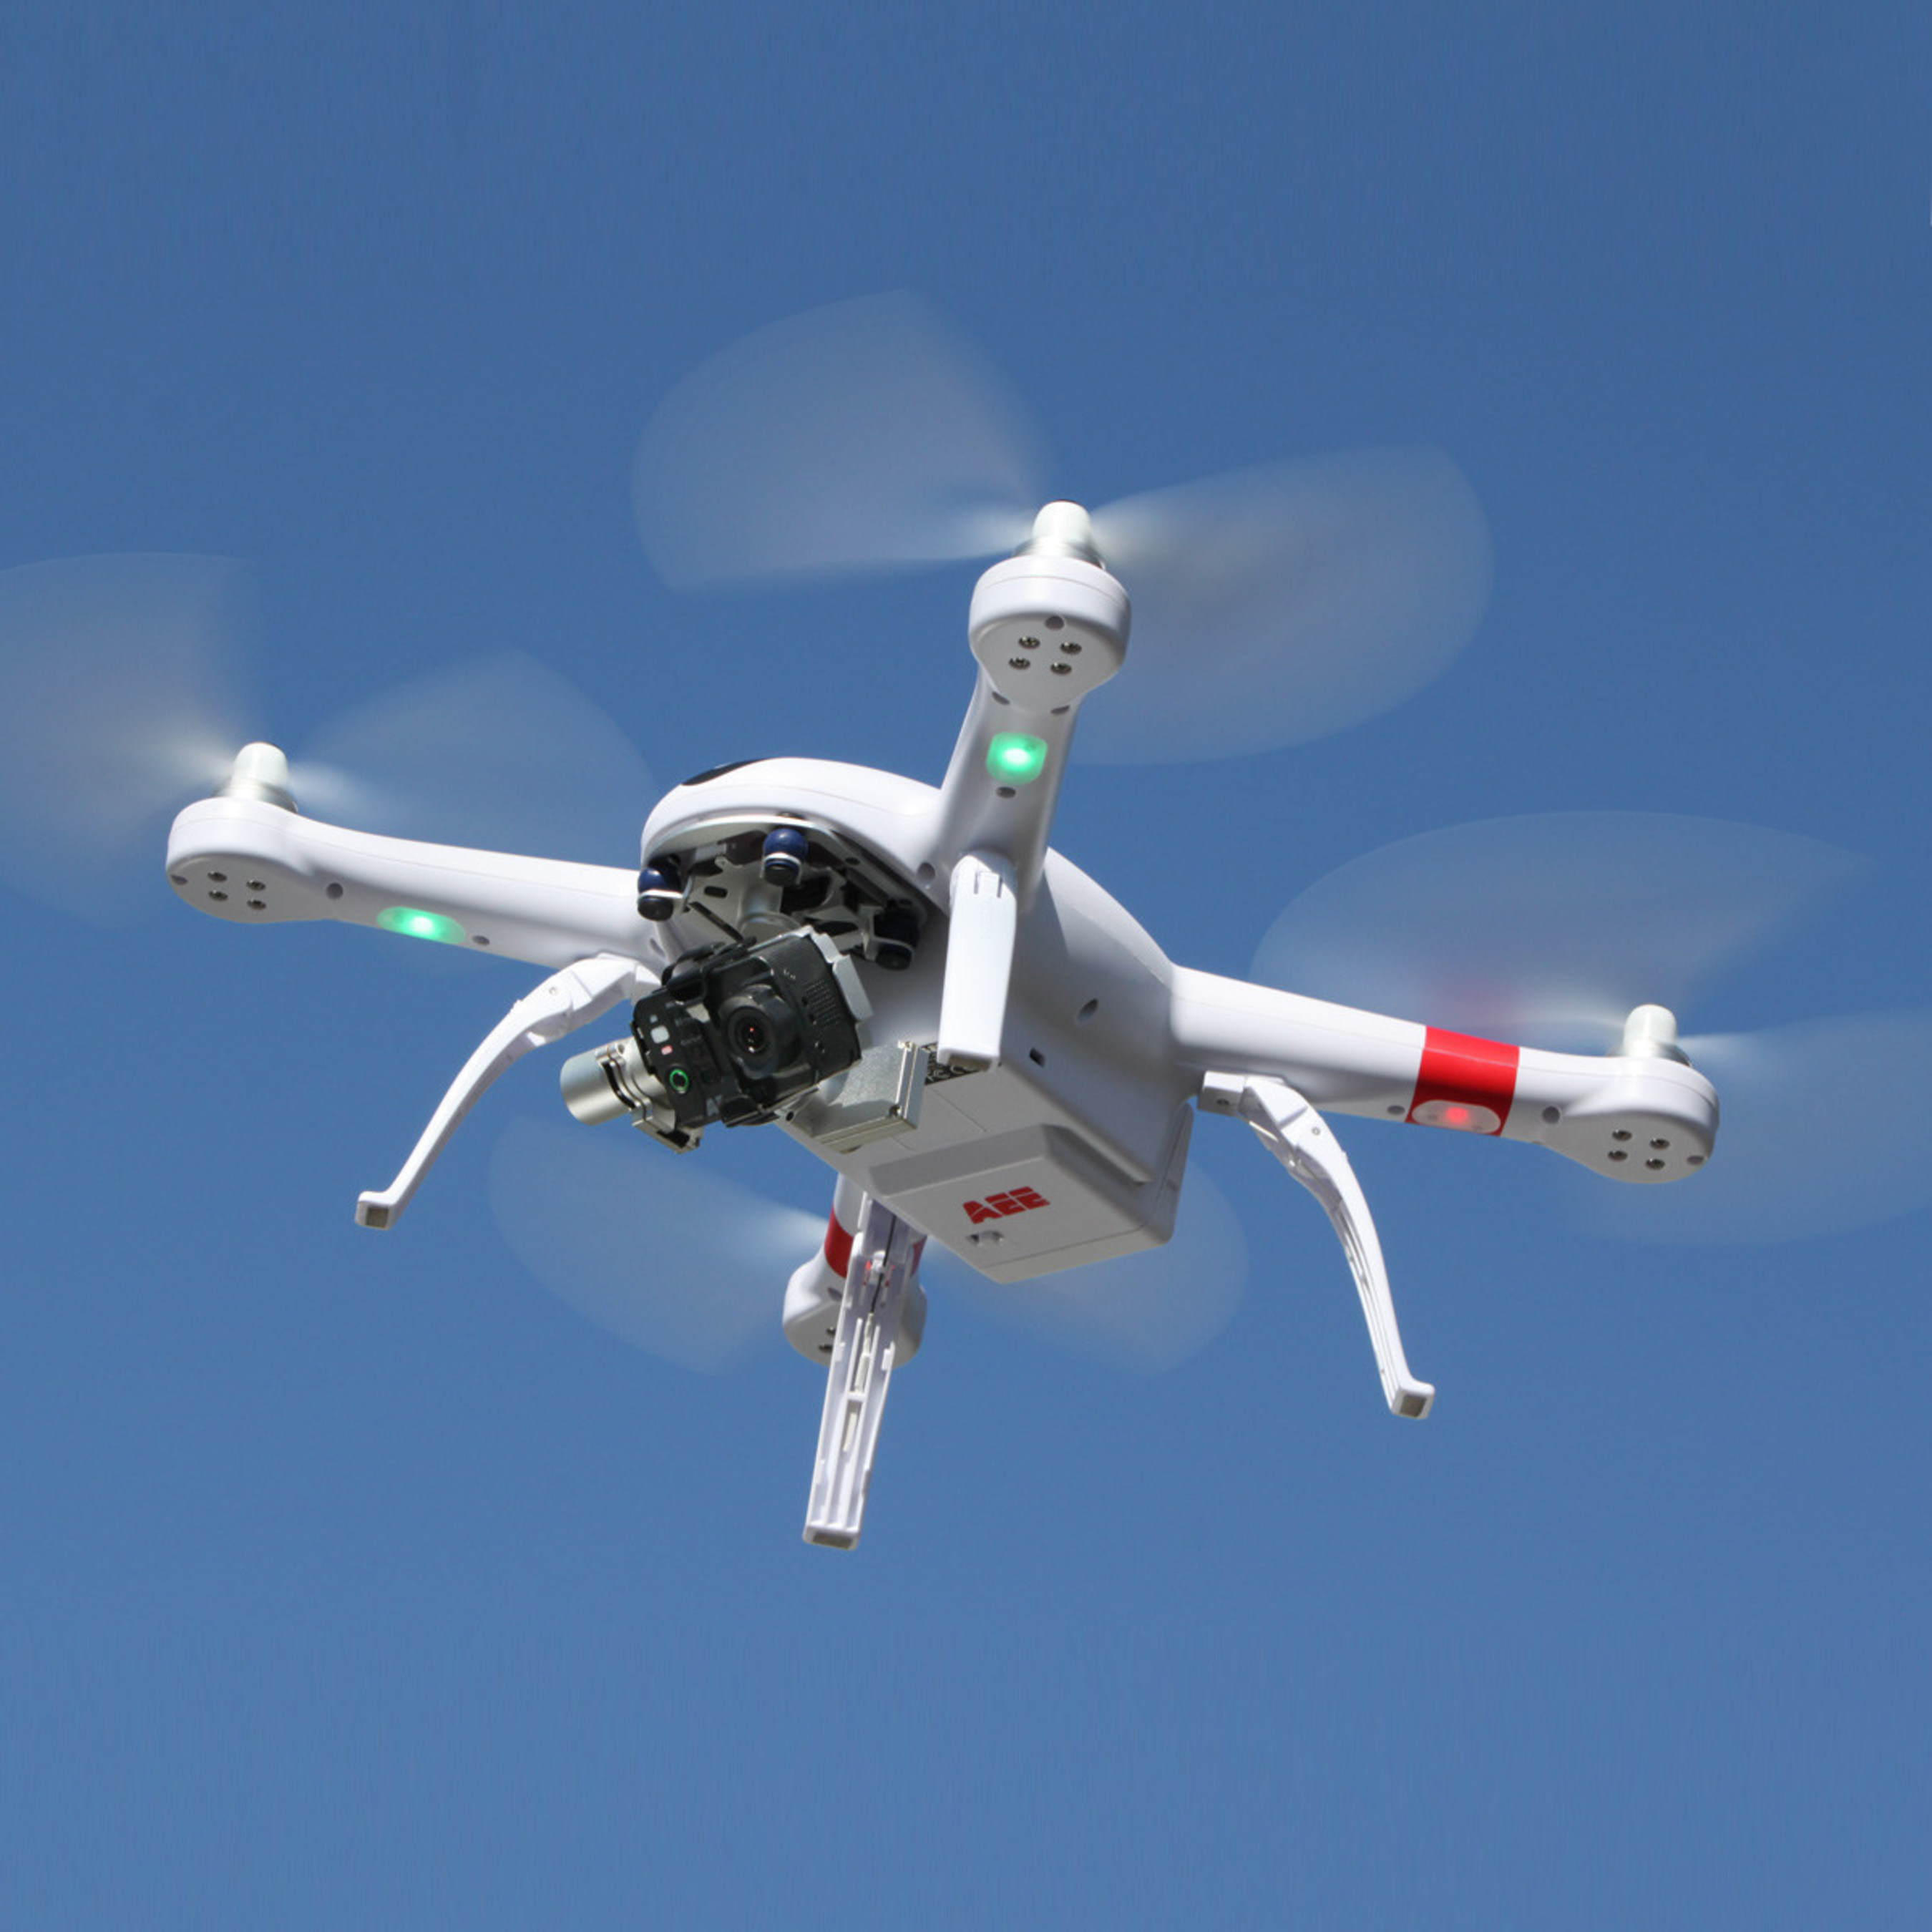 AEE Technology's New AP11 Drone Takes Videos to New Heights